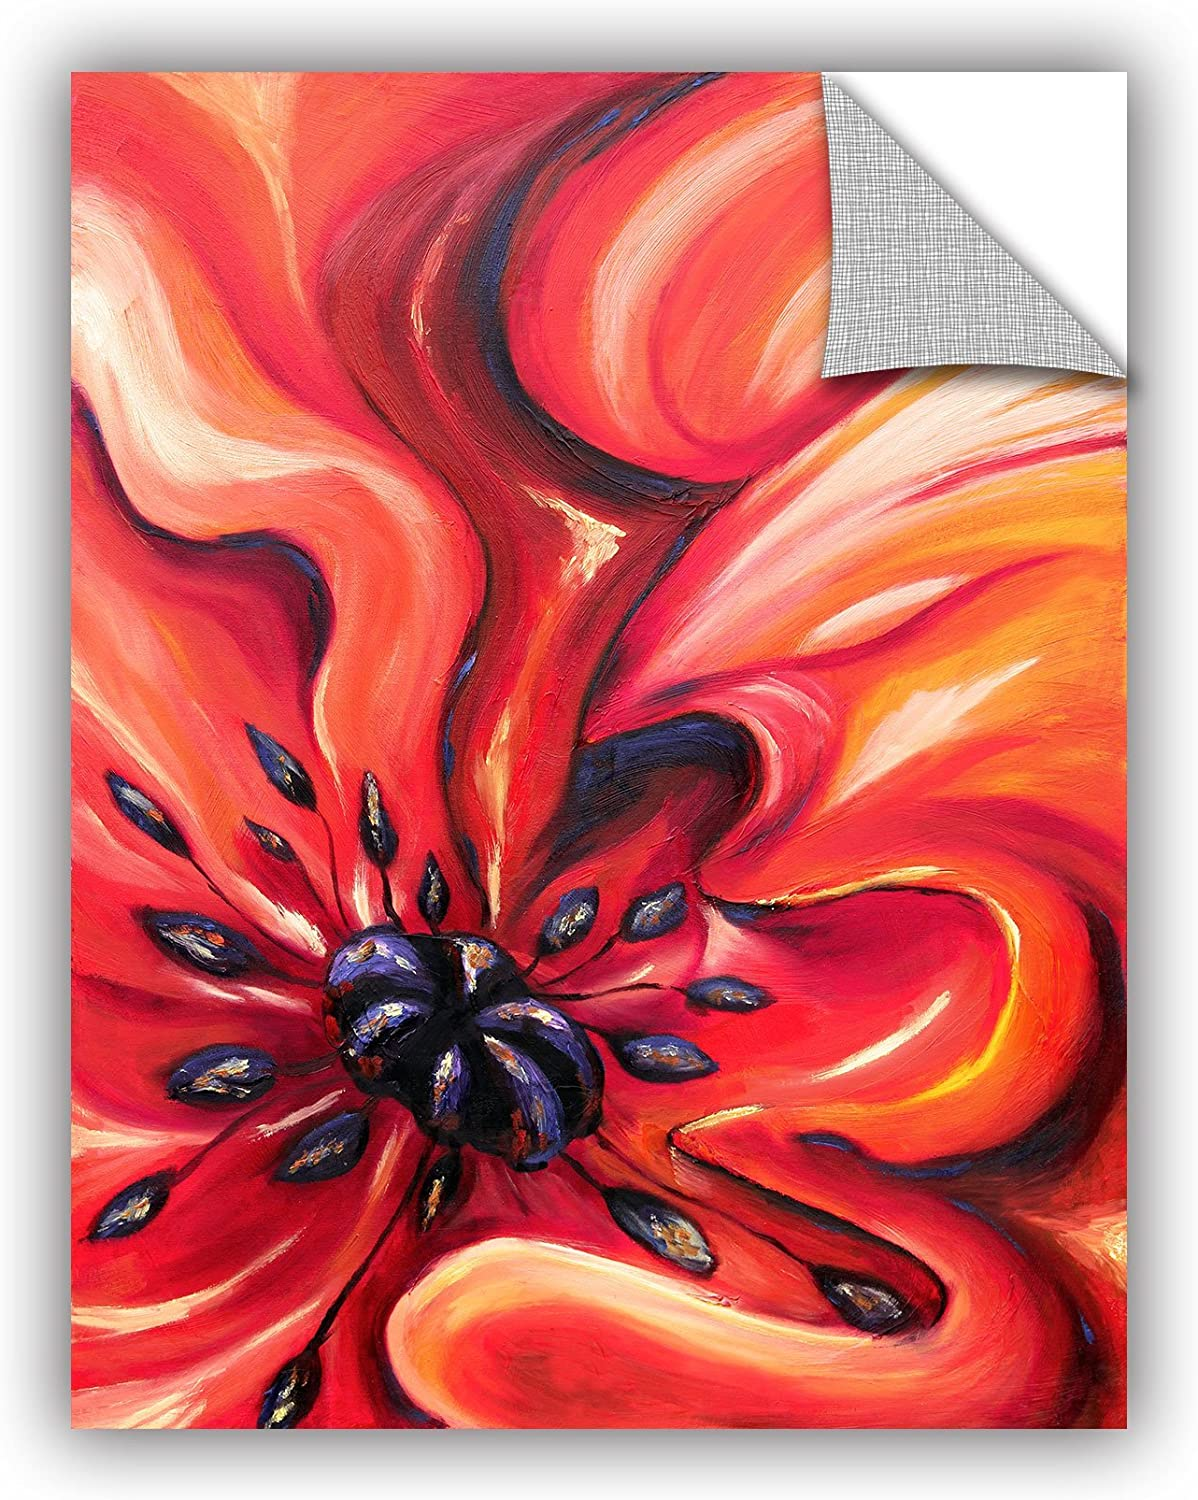 ArtWall 0tro031a1418p Meaghan Troup's Consuming Fire  Removable Wall Art Mural, 14-Inchx18-Inch